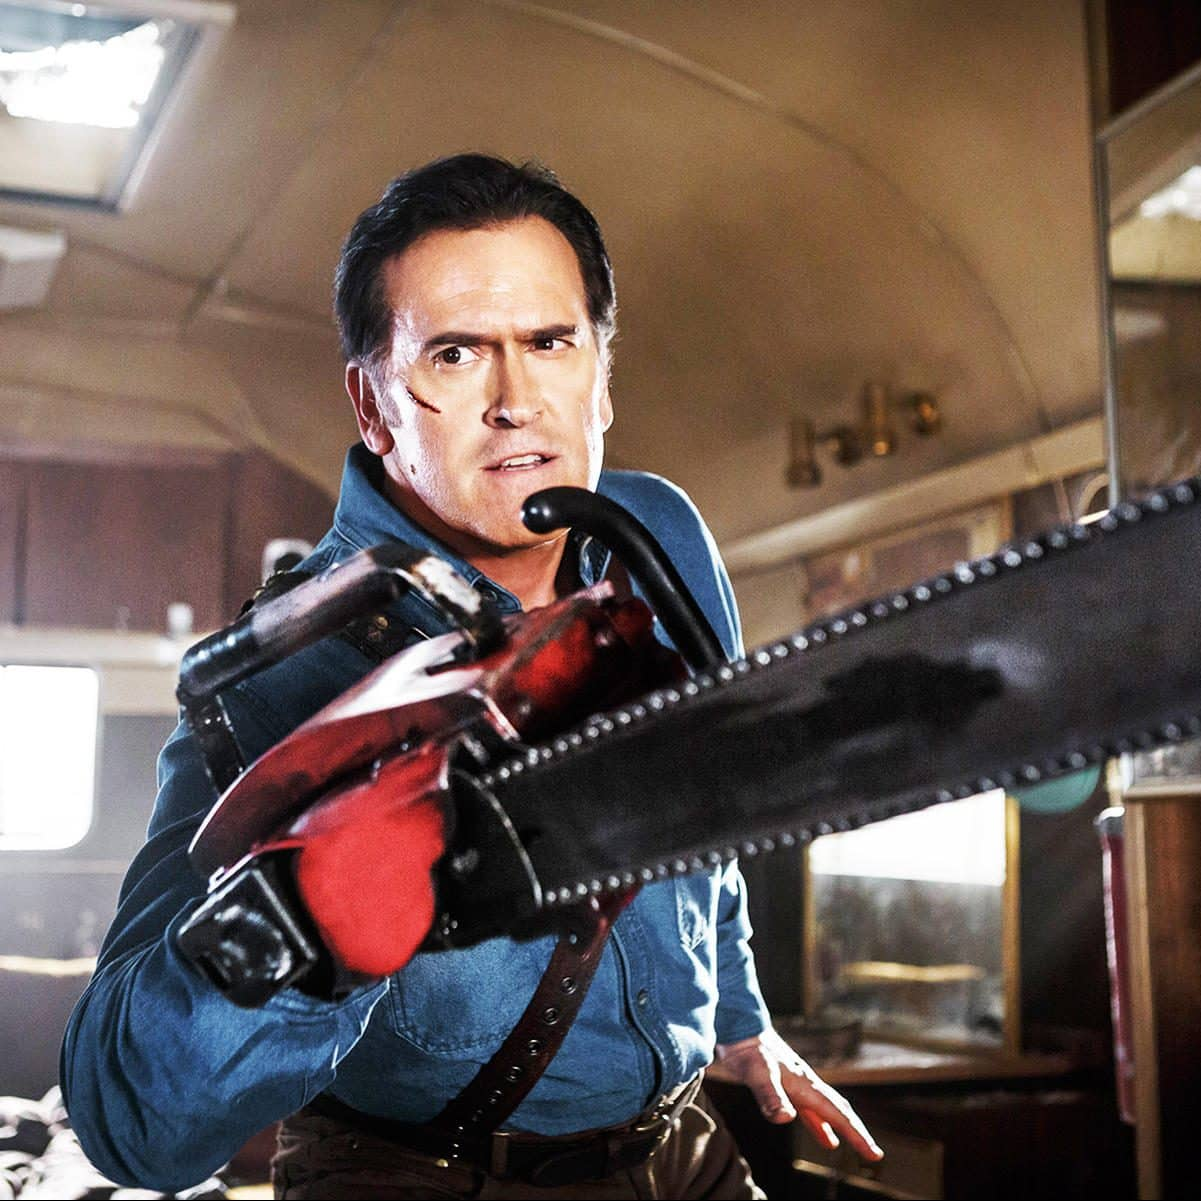 151023 news ash vs evil dead e1571910467876 Bruce Campbell's Plastic Surgery and 19 Other Things You Didn't Know About Army of Darkness